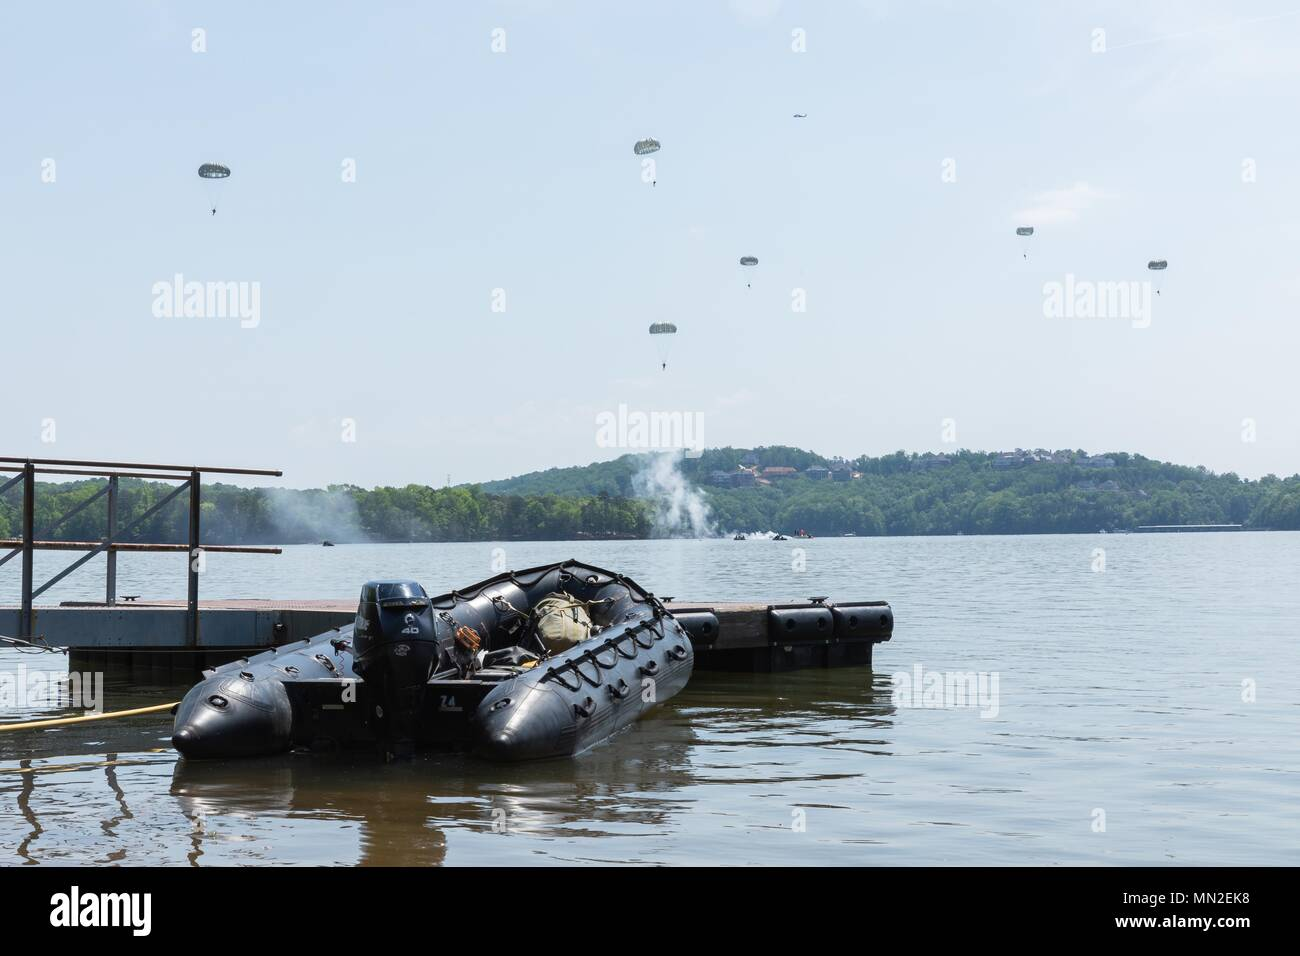 Paratroopers with the 5th Ranger Training Battalion (5th RTB), Camp Merrill, Dahlonega, Georgia, descend to the water during airborne operations at Lake Lanier, GA, May 9, 2018, May 9, 2018. 5th RTB conducted a deliberate airborne operation in order to maintain proficiency in this mission critical task. (U.S. Army photo by Spc. Jesse Coggins/Released). () - Stock Image